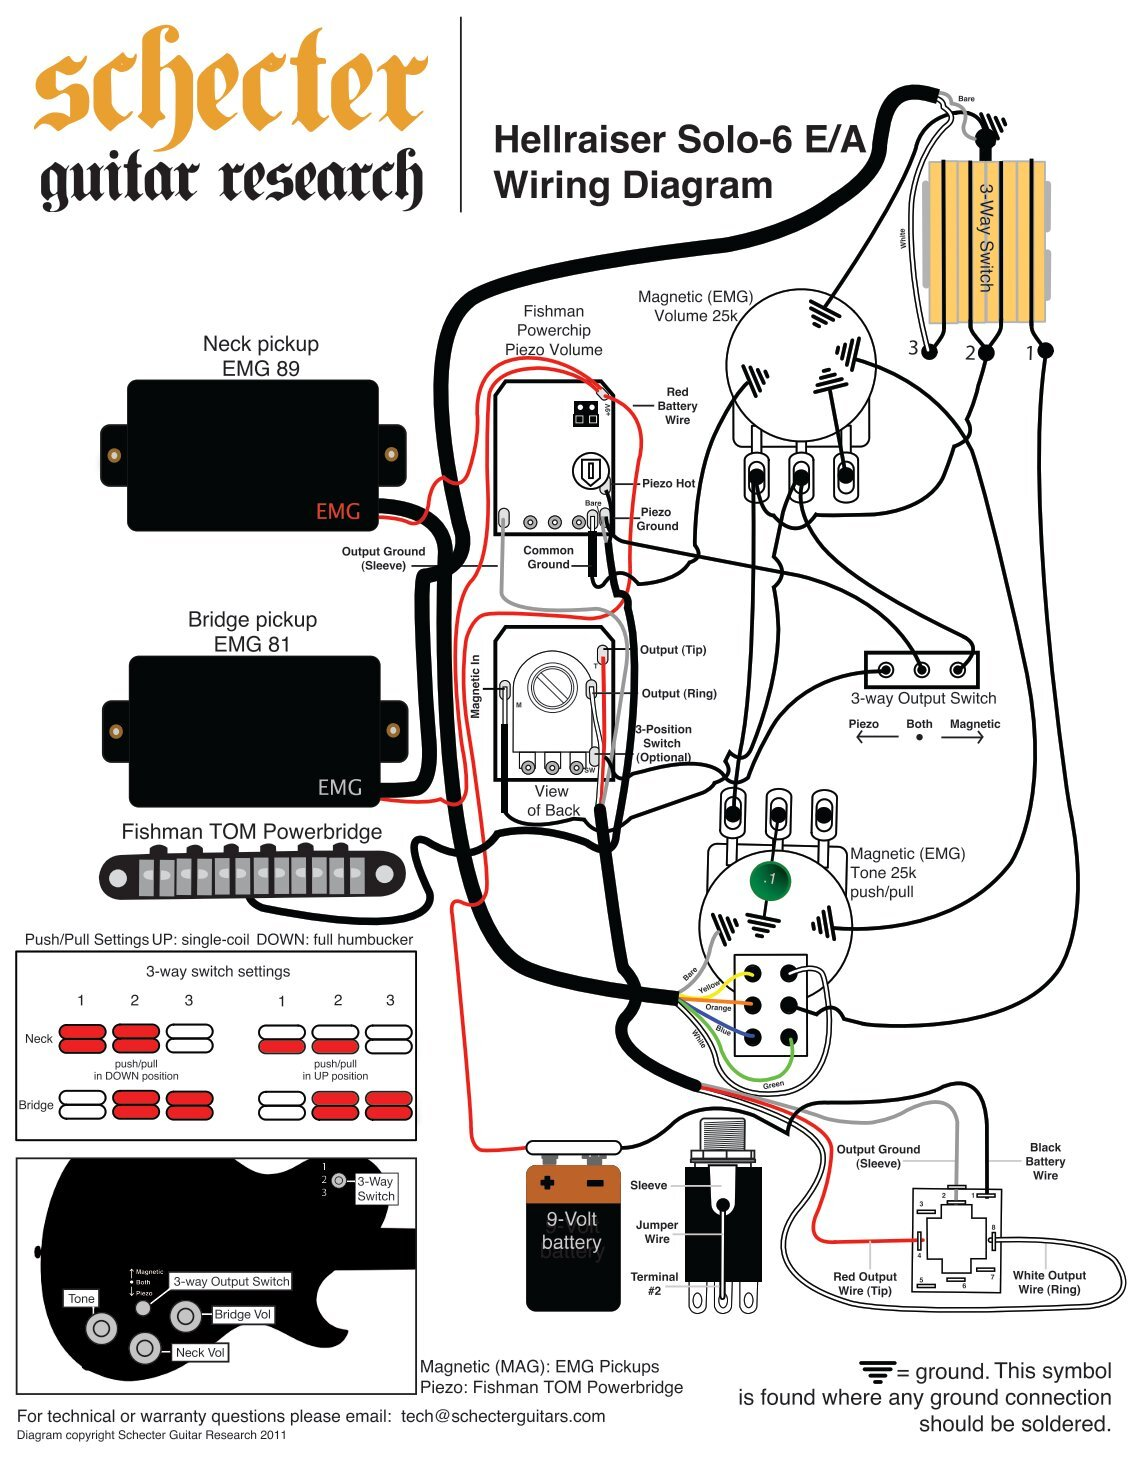 gretsch bst guitar wiring diagrams - wiring liry diagram a4 on michael  kelly wiring diagram,